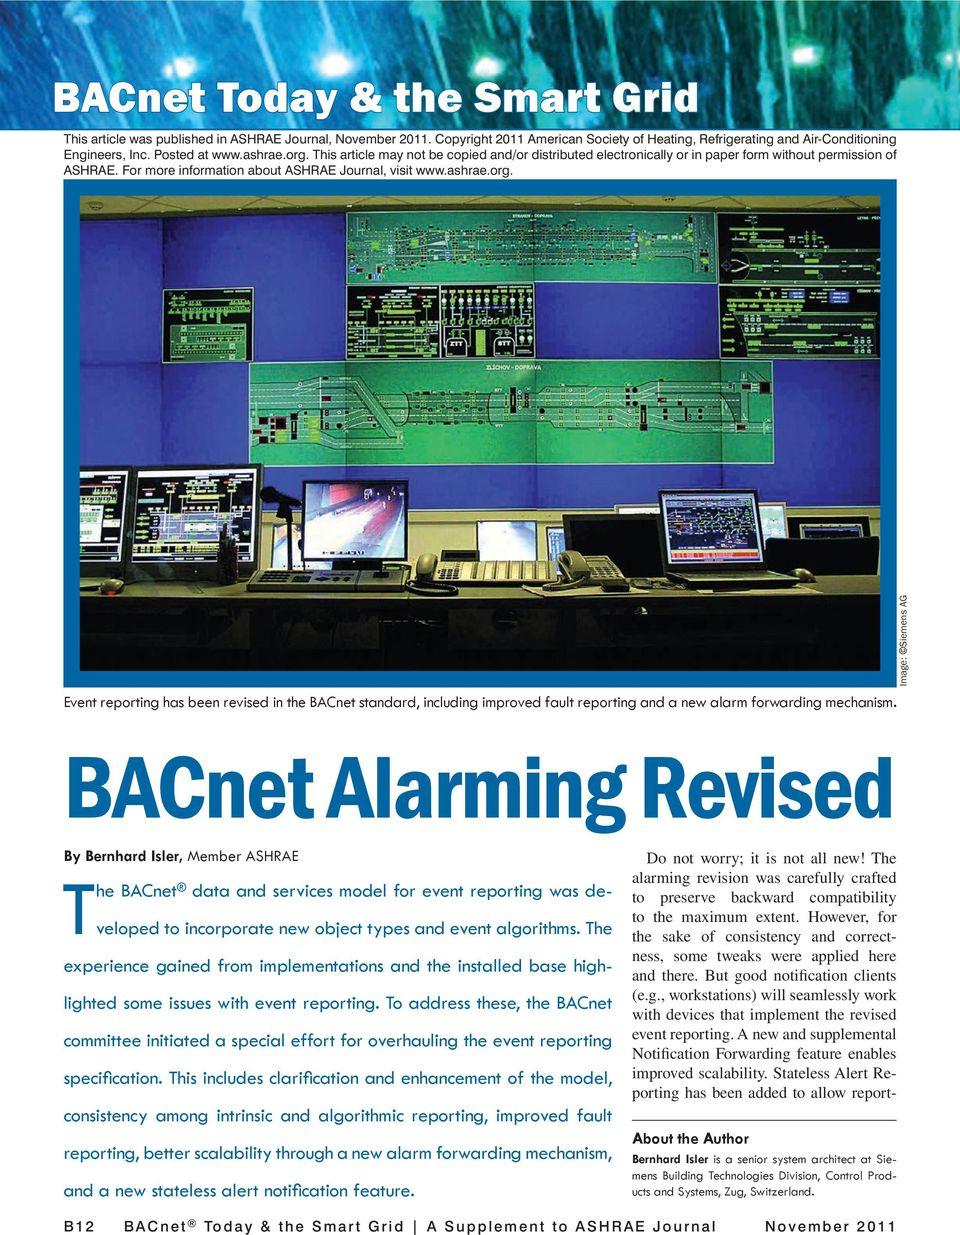 Image: Siemens AG BACnet Alarming Revised By Bernhard Isler, Member ASHRAE The BACnet data and services model for event reporting was developed to incorporate new object types and event algorithms.